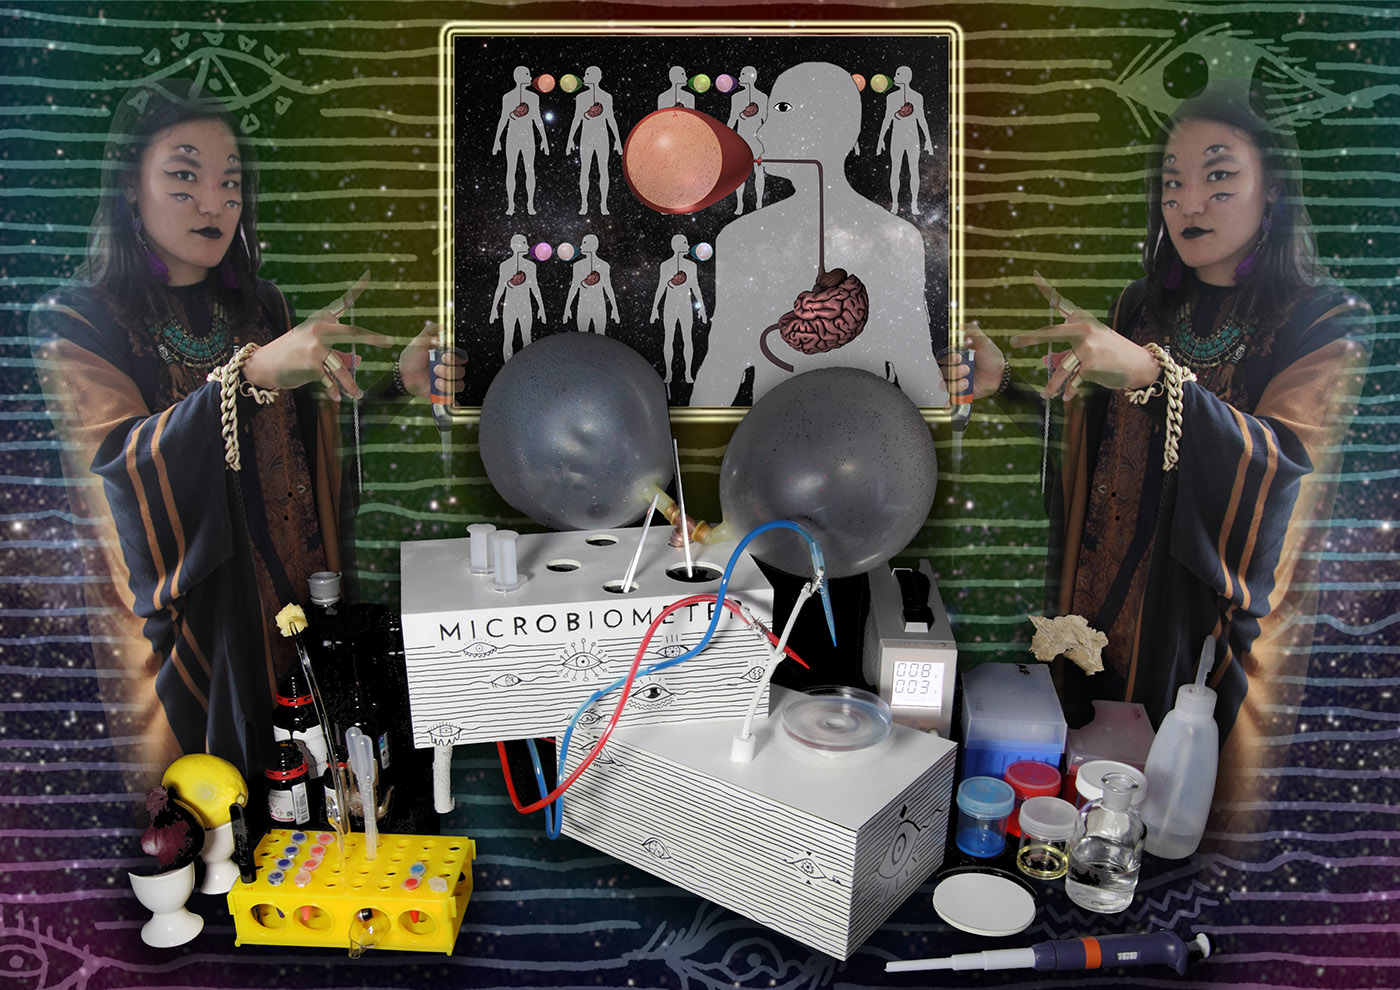 Synthetic bioloby Synbio microbiomes shamanism ritual biology Biodesign contestable design bio tech